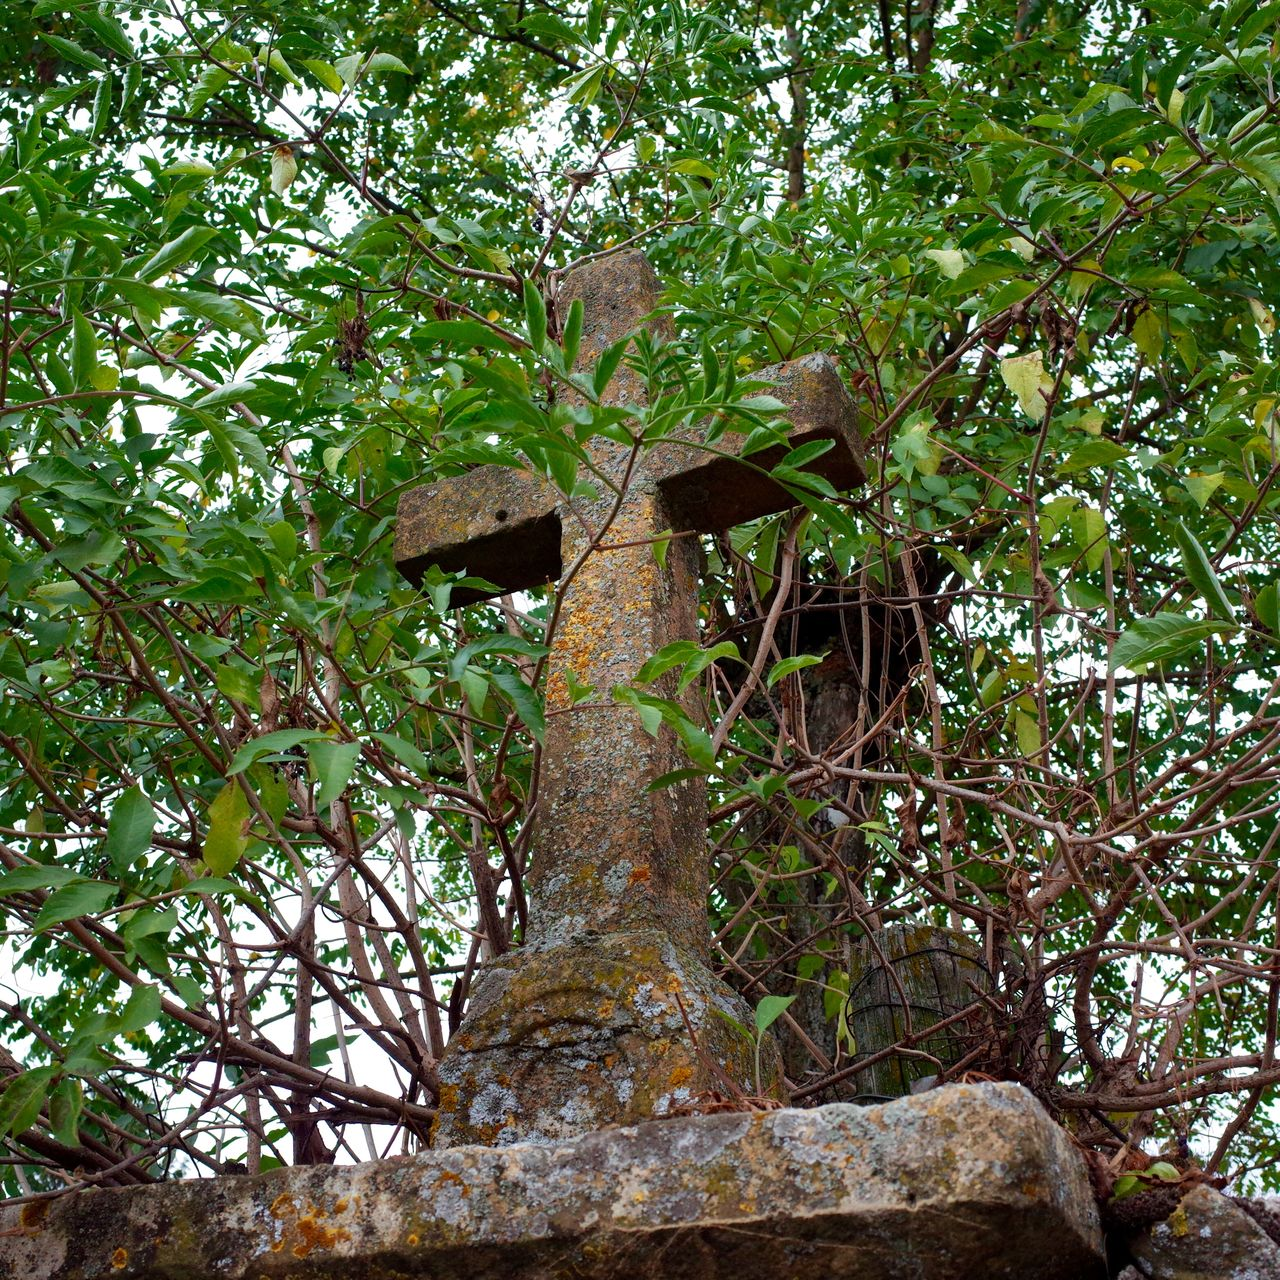 Low Angle View of Weathered Cross In Bushes